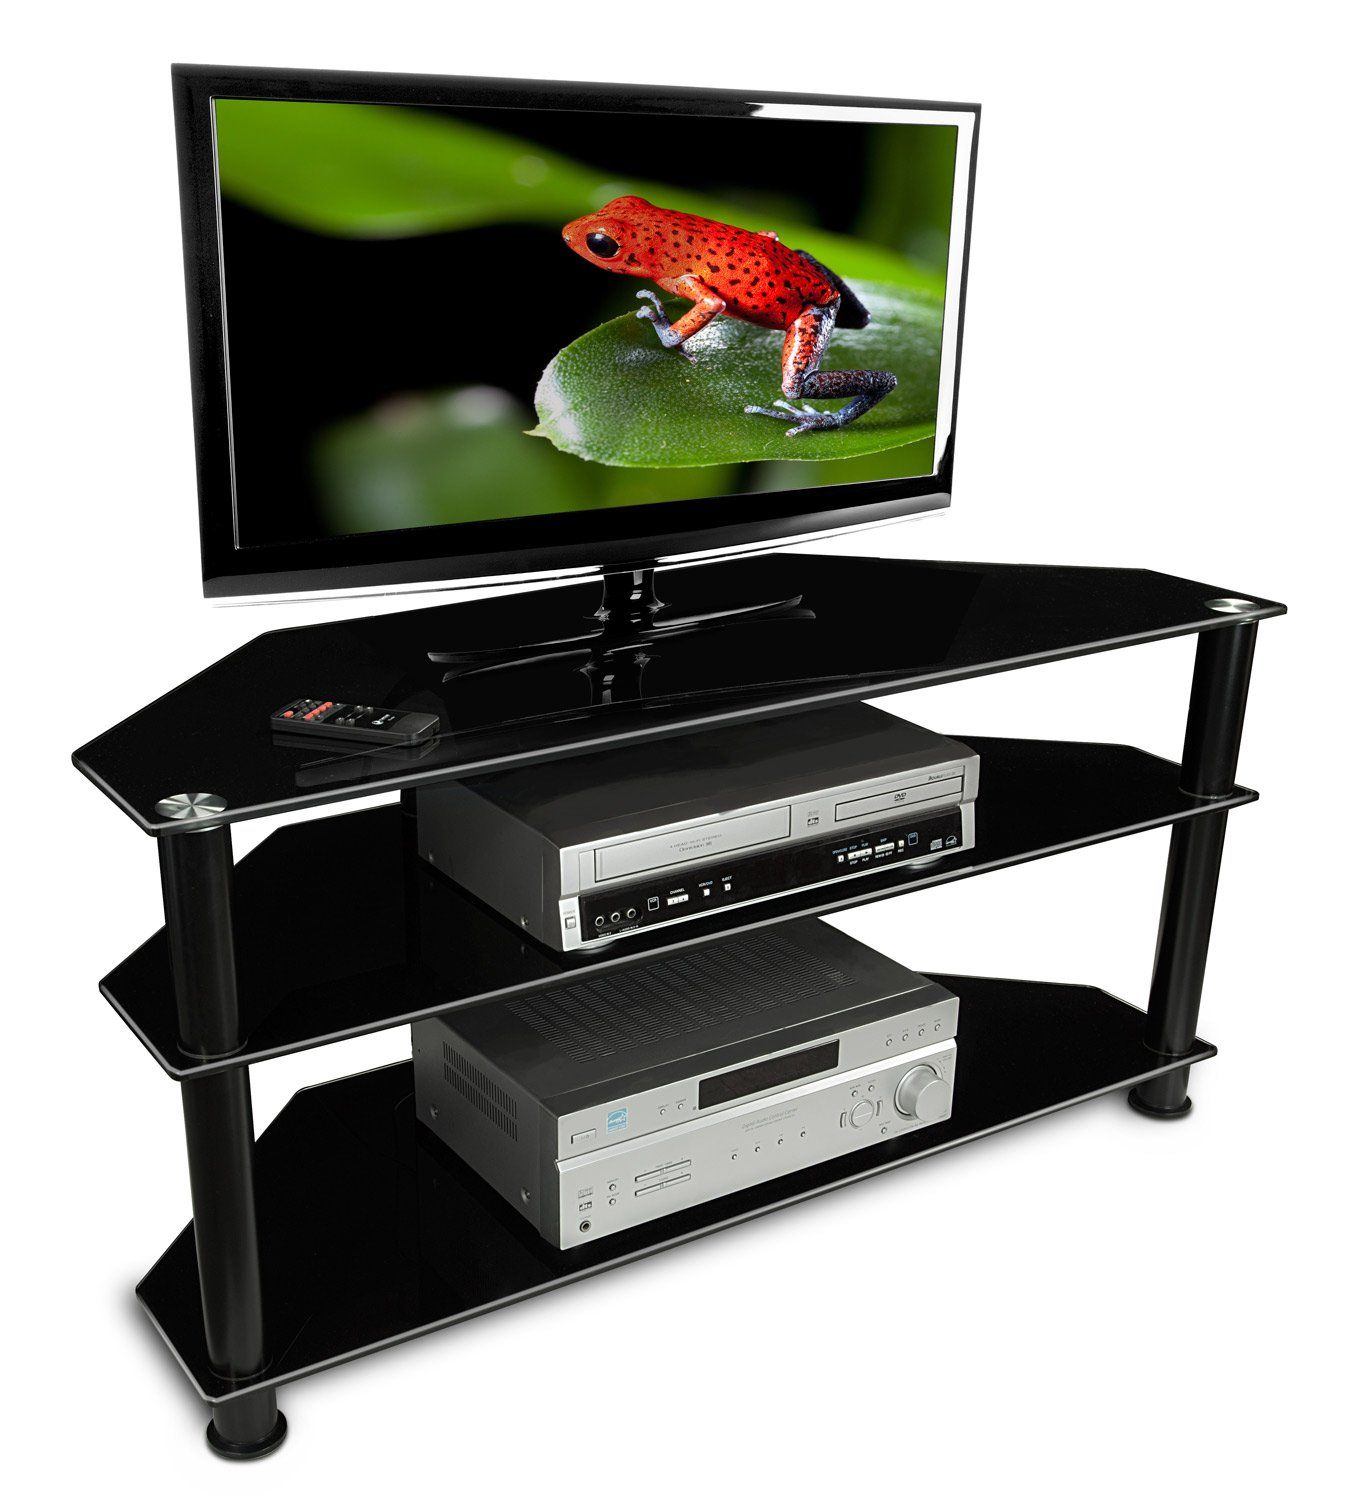 Amazon.com: Mount It! MI 850 TV Stand Glass Shelving With Storage, Black:  Kitchen U0026 Dining